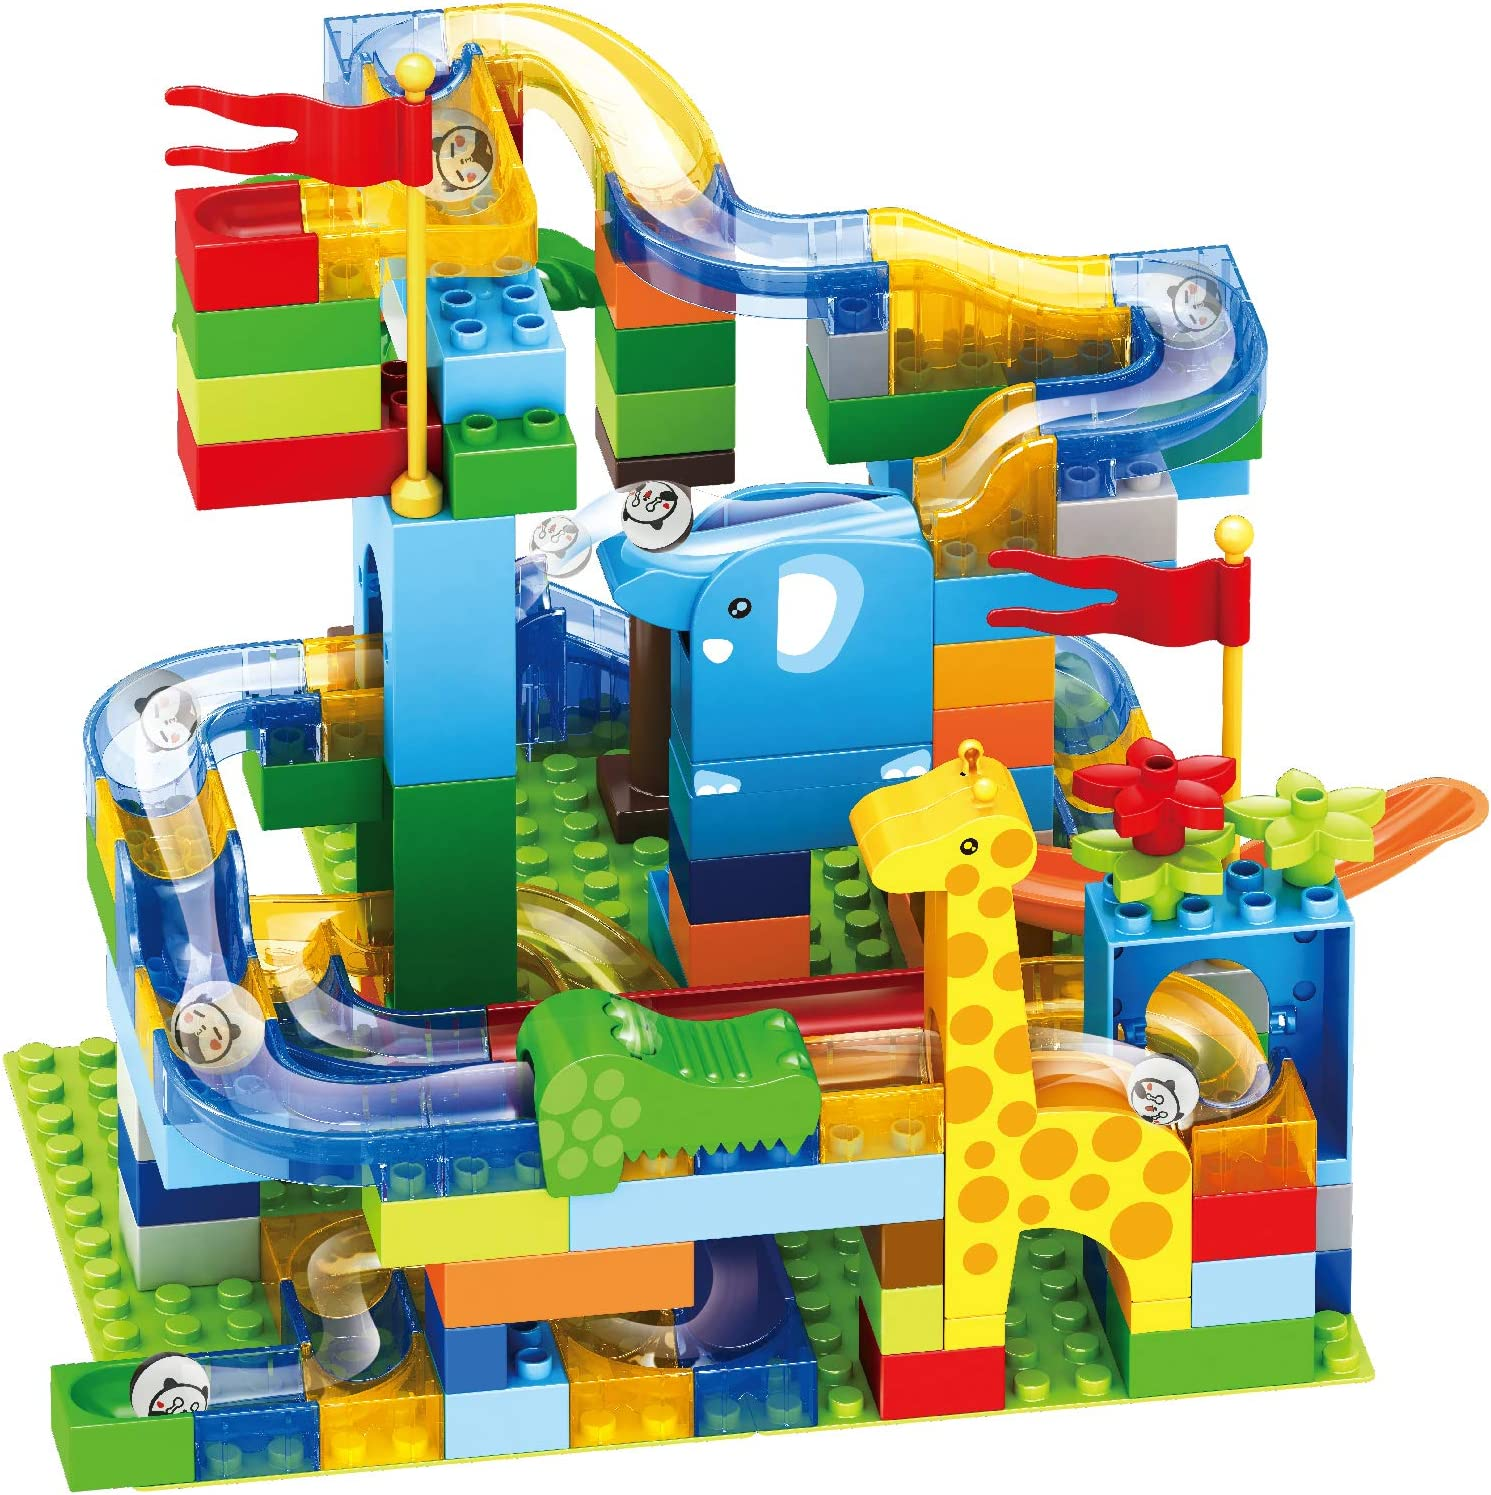 Little Brown Box Deluxe 168pc Animal Jungle Style Marble Run Set,Marble Roller Coaster Race Track Game - STEM Learning Toy Bricks & Educational Maze Building Blocks Kit – For Toddler Kids 3,4,5+ Years